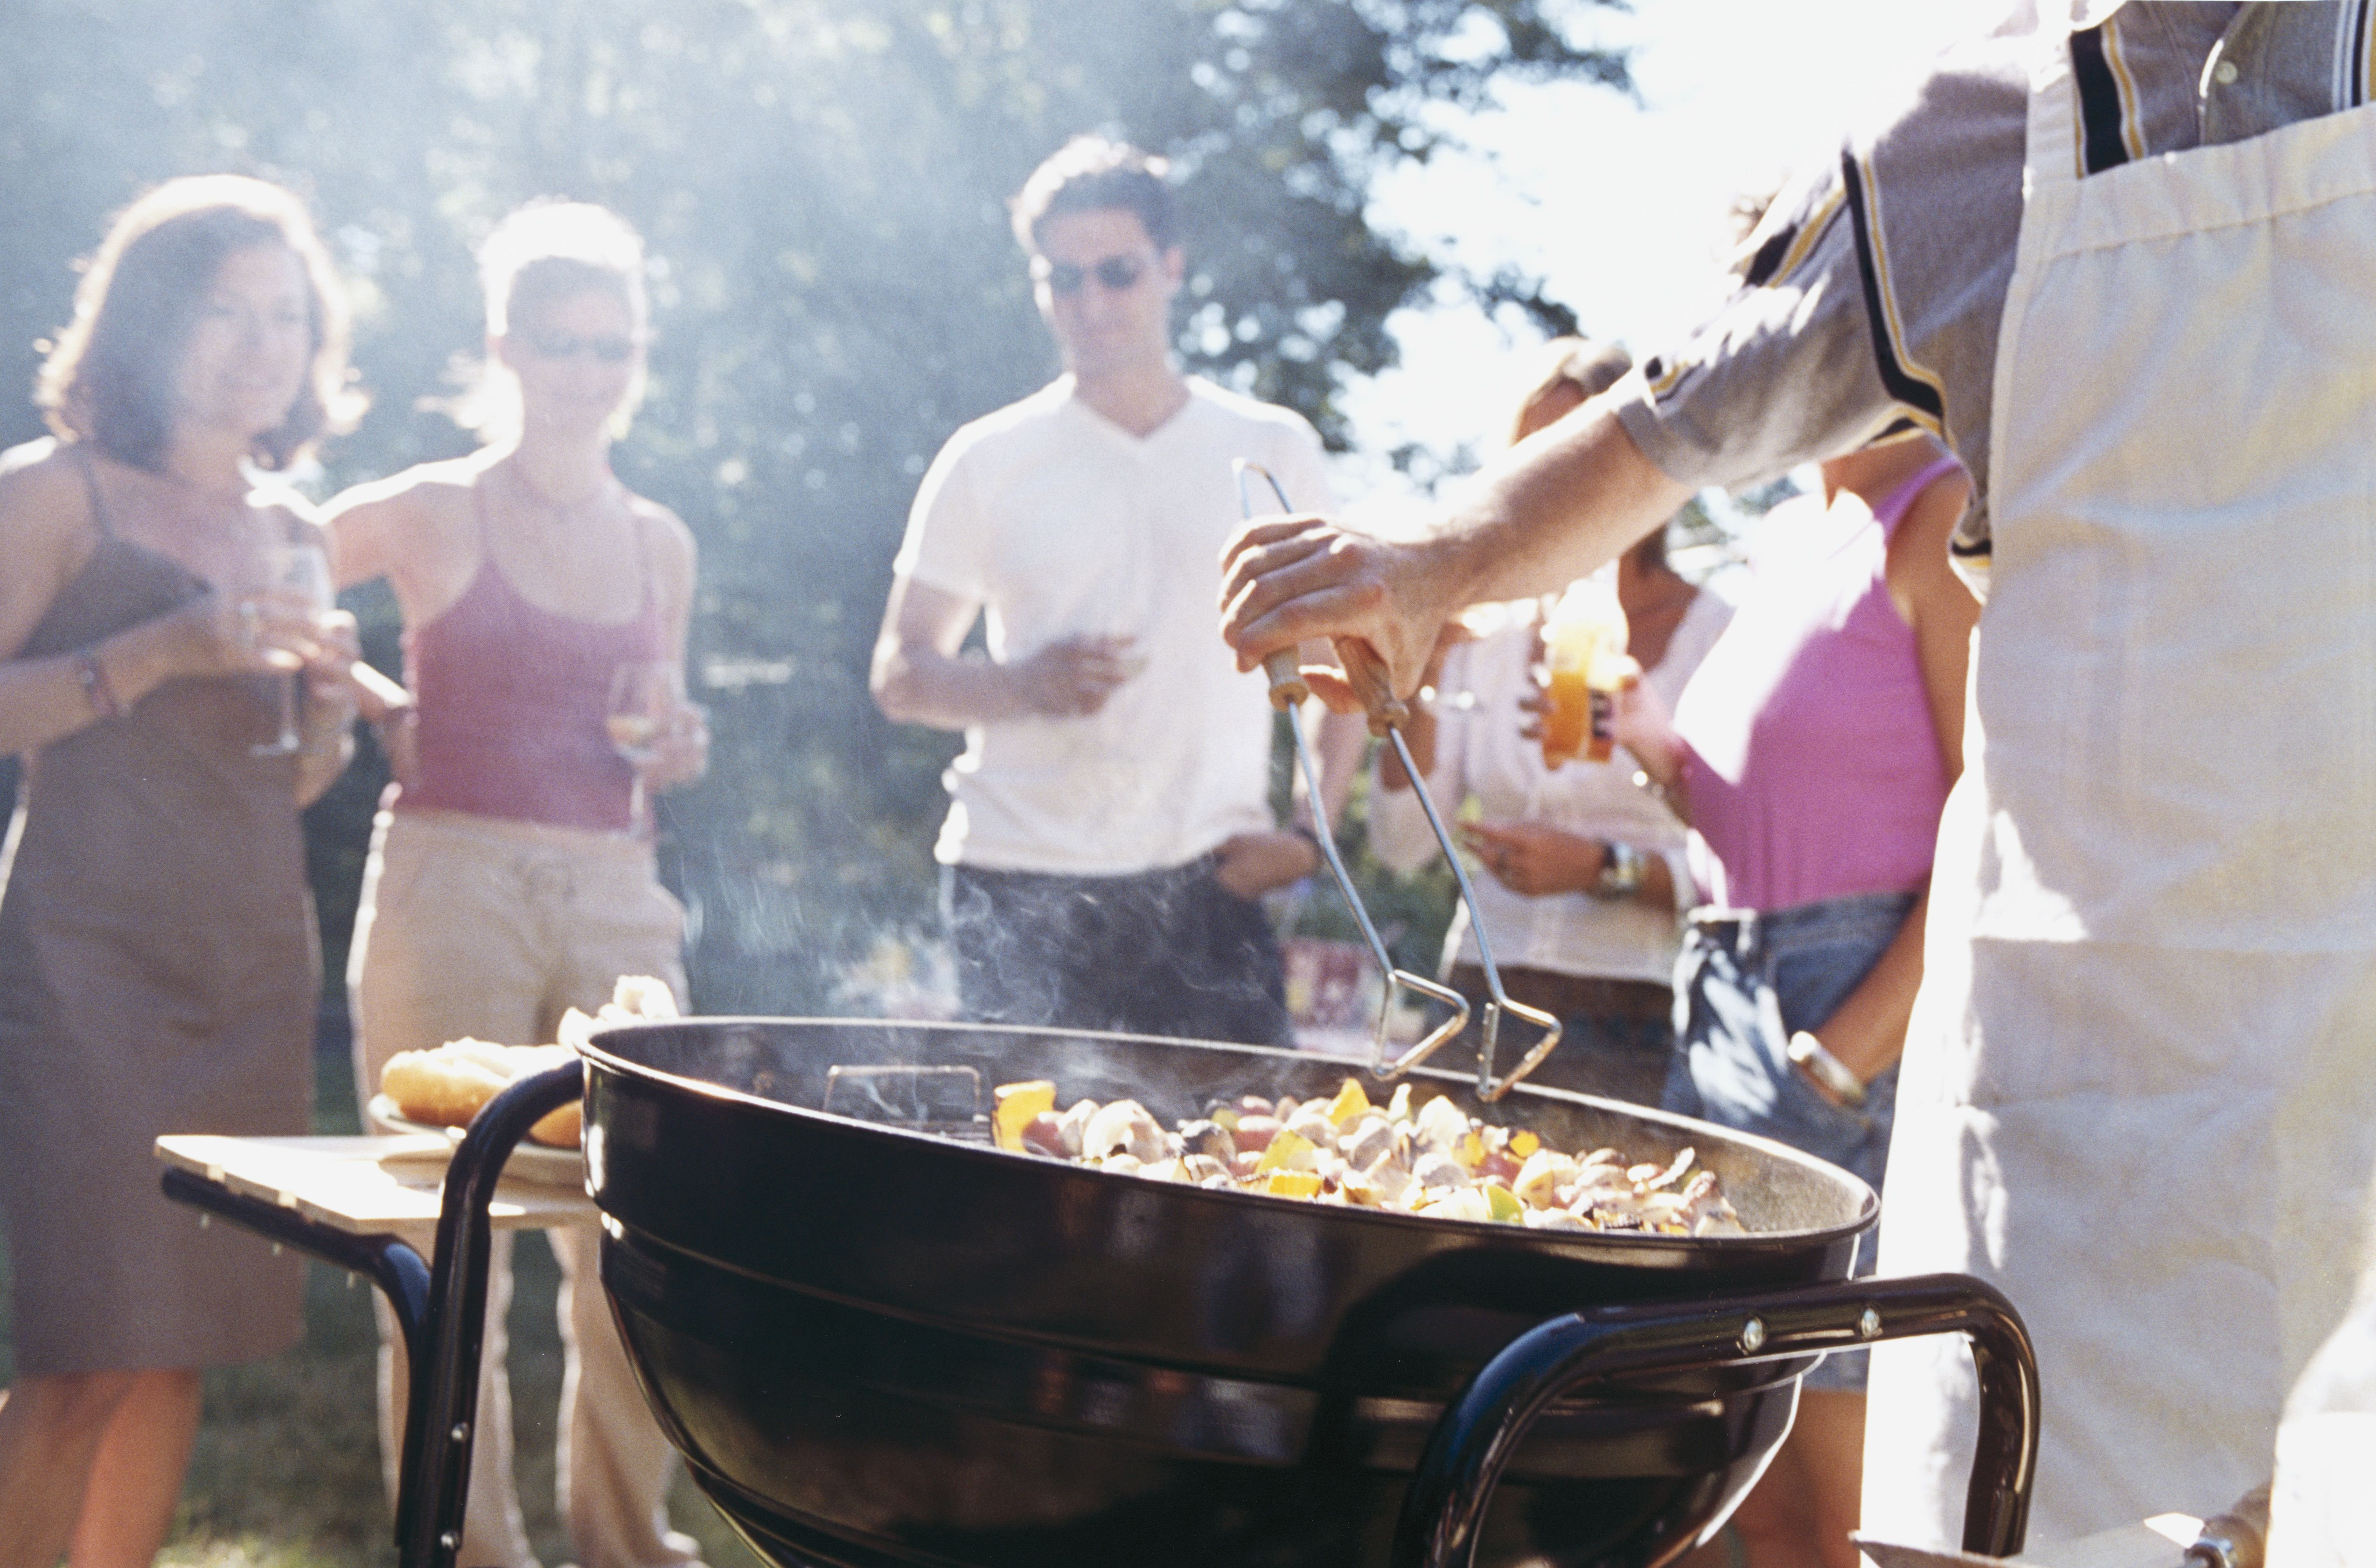 The 8 best kamado grills and smokers to buy in 2018 the 10 best charcoal grills to buy in 2018 dailygadgetfo Images